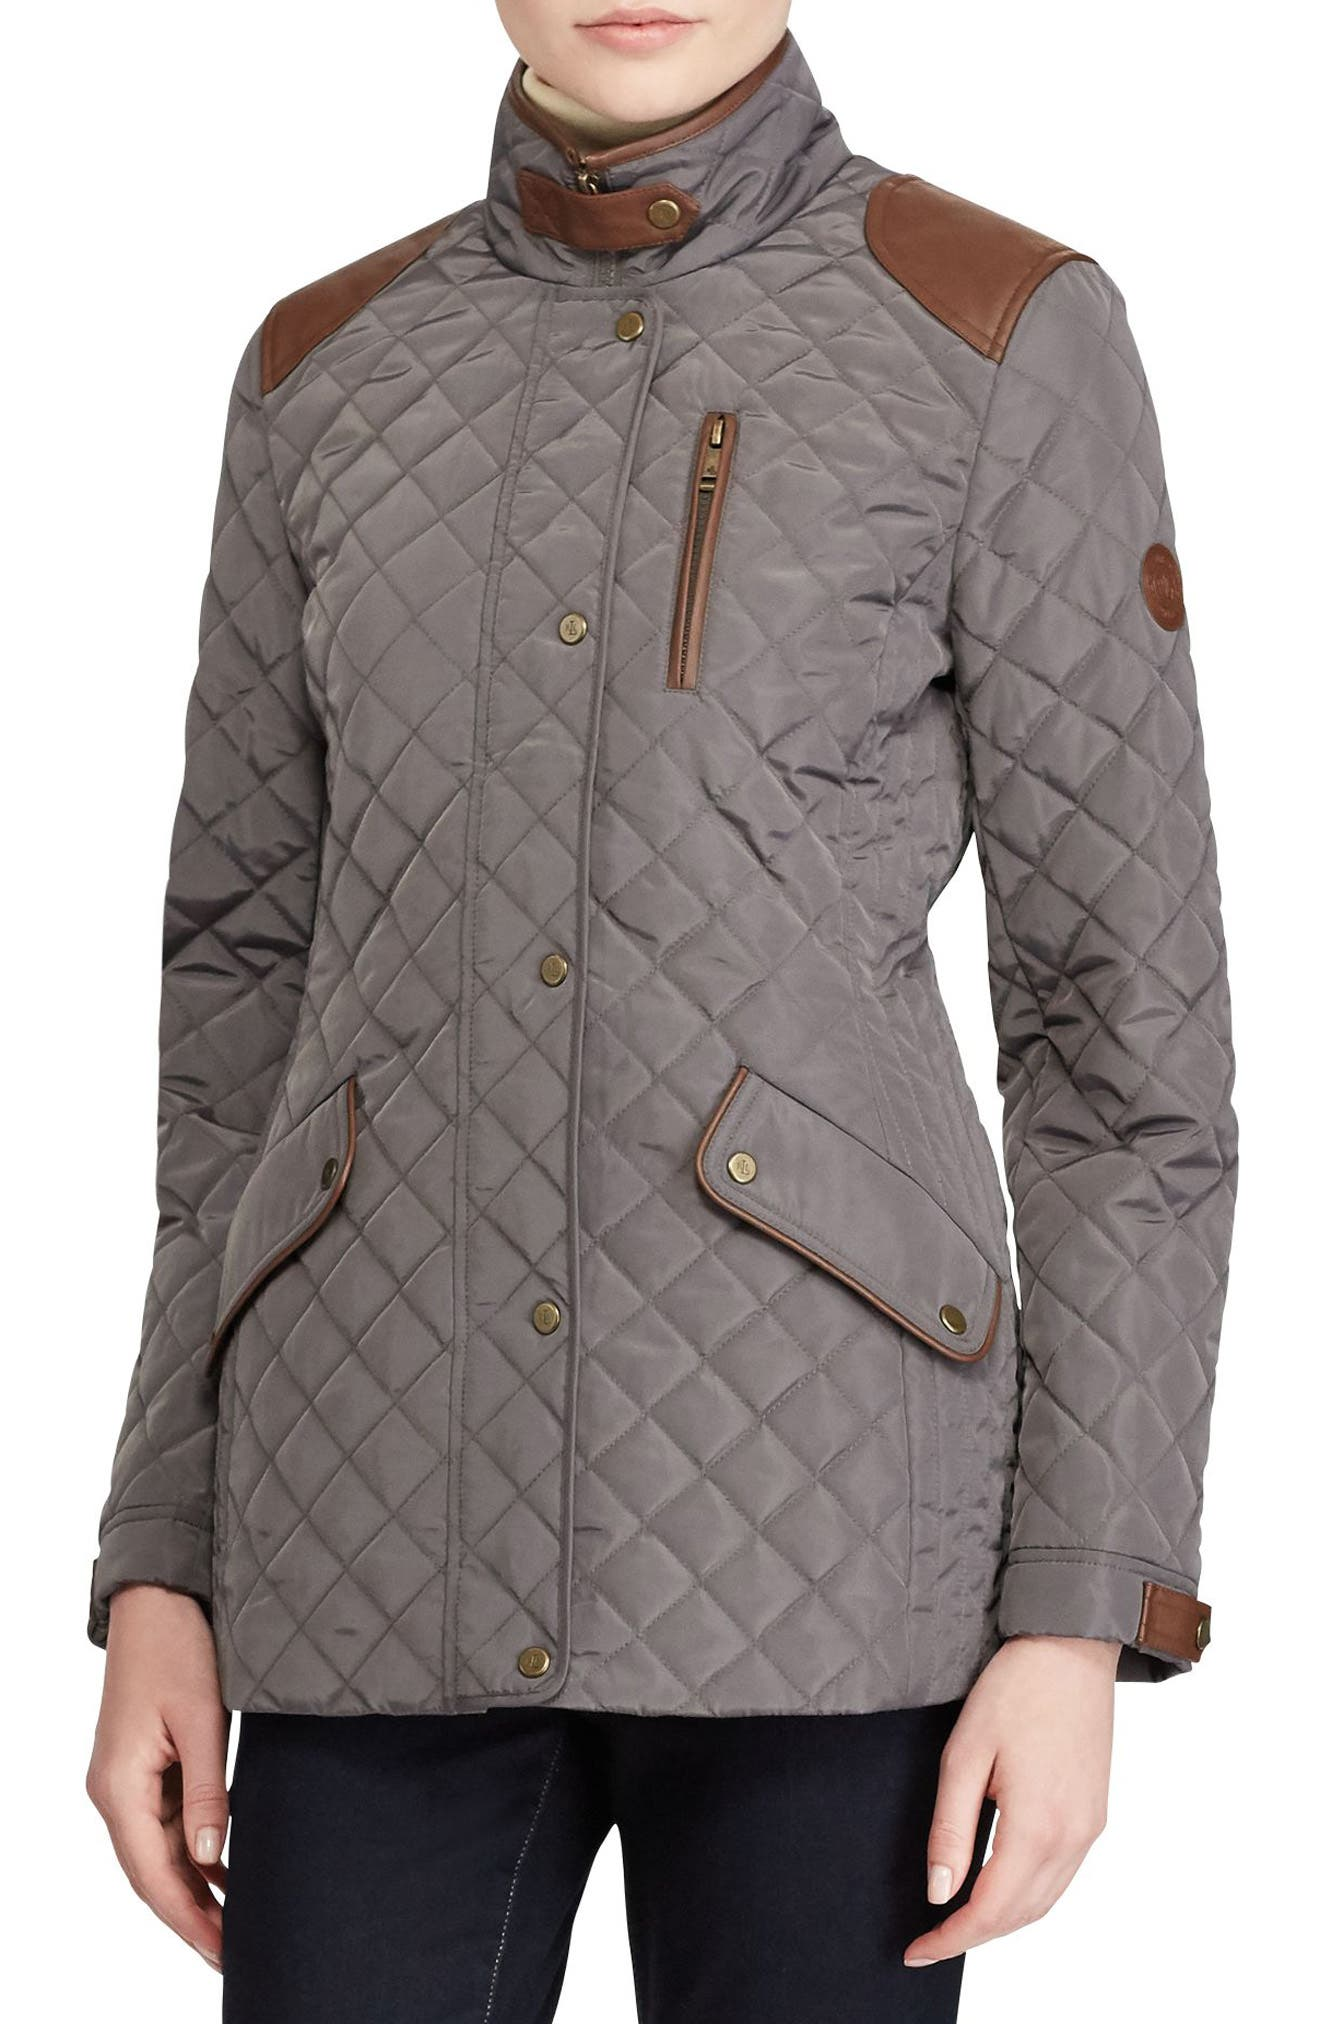 Lauren Ralph Lauren Diamond Quilted Jacket with Faux Leather Trim (Regular & Petite)